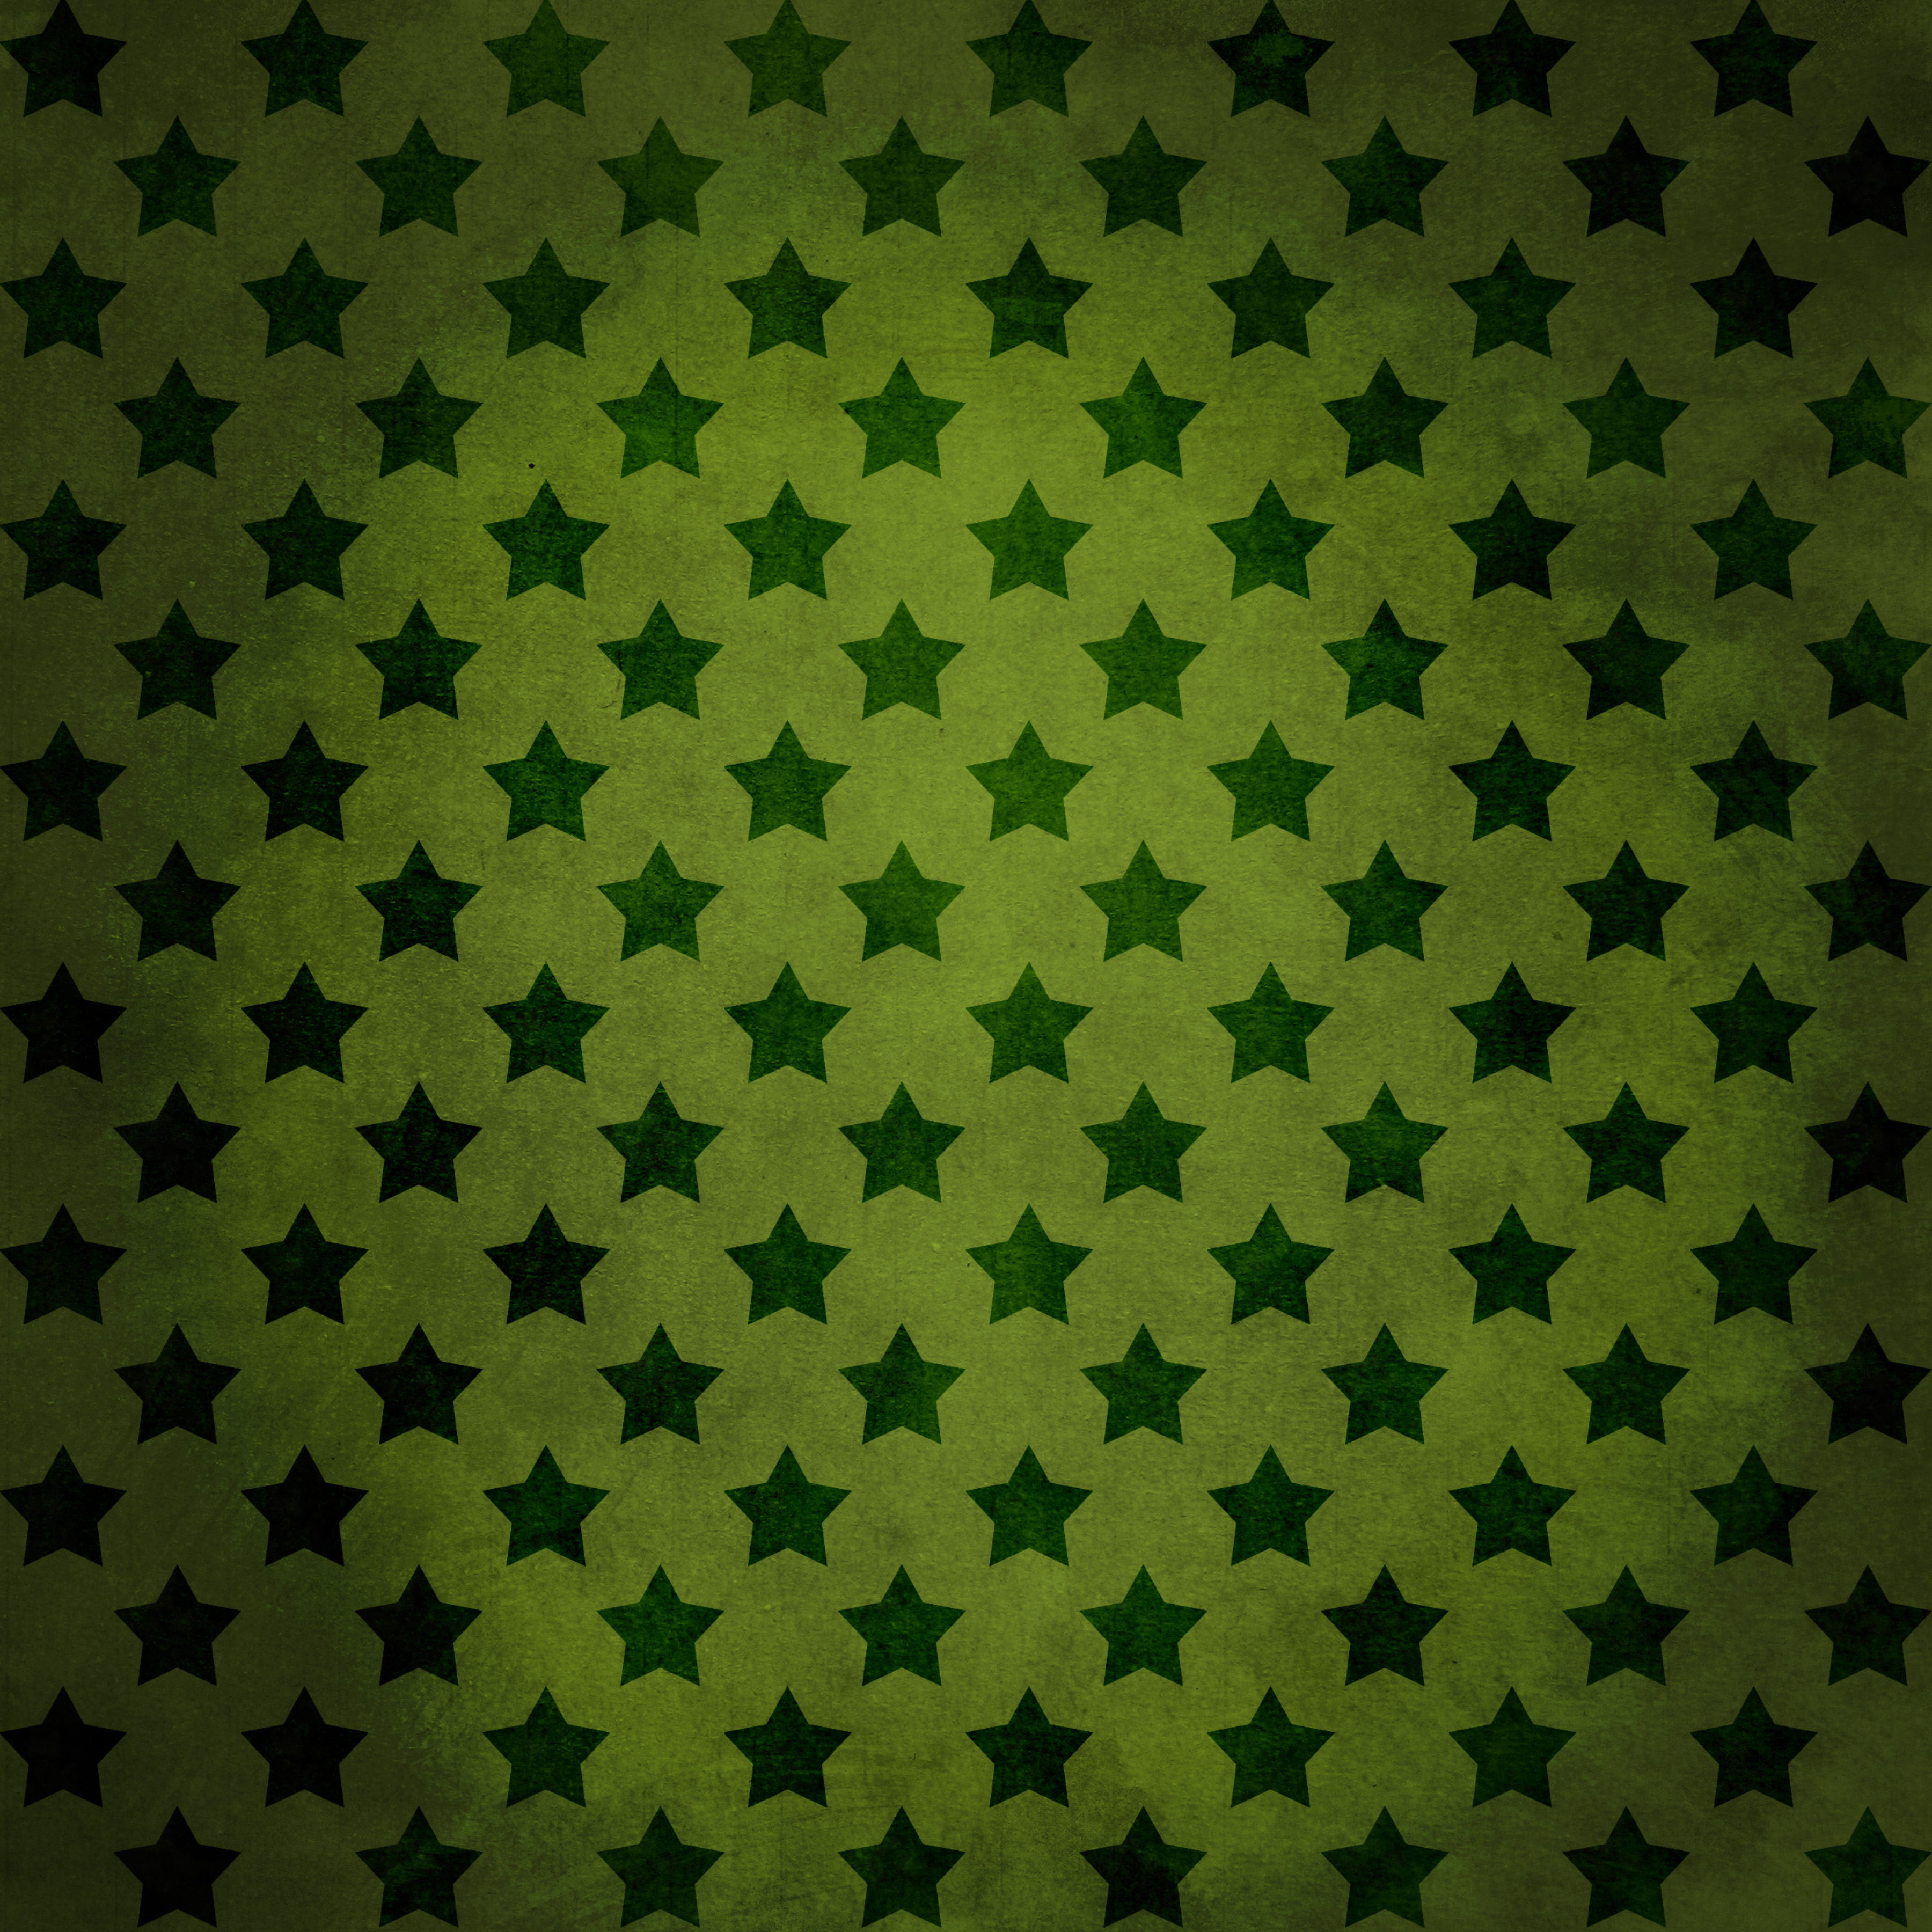 stars, template, texture, background, photo, stars background texture